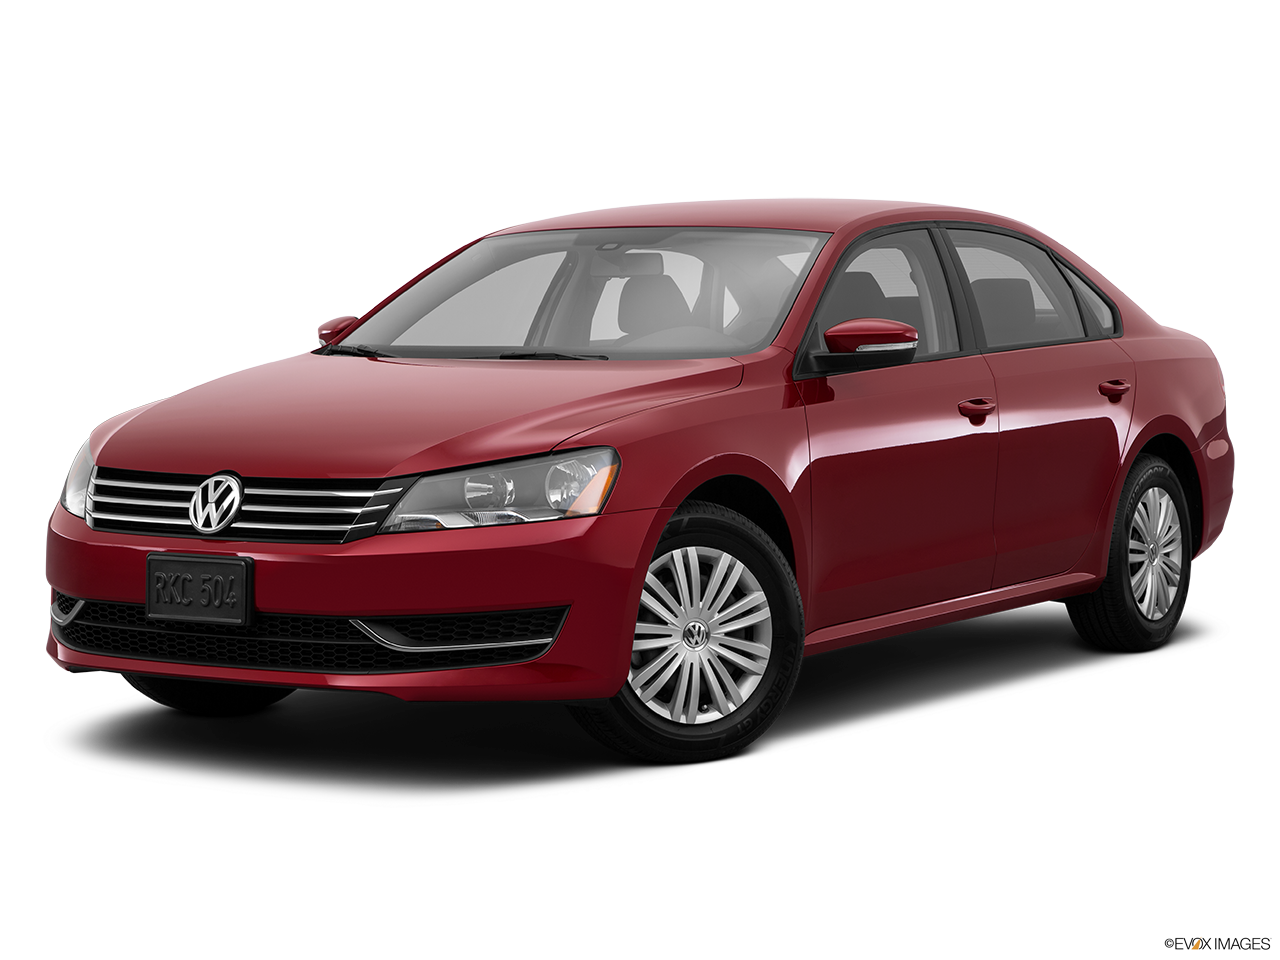 quality tb ext edition limited vehicle passat features volkswagen iris width paint trims models vw pov fabric